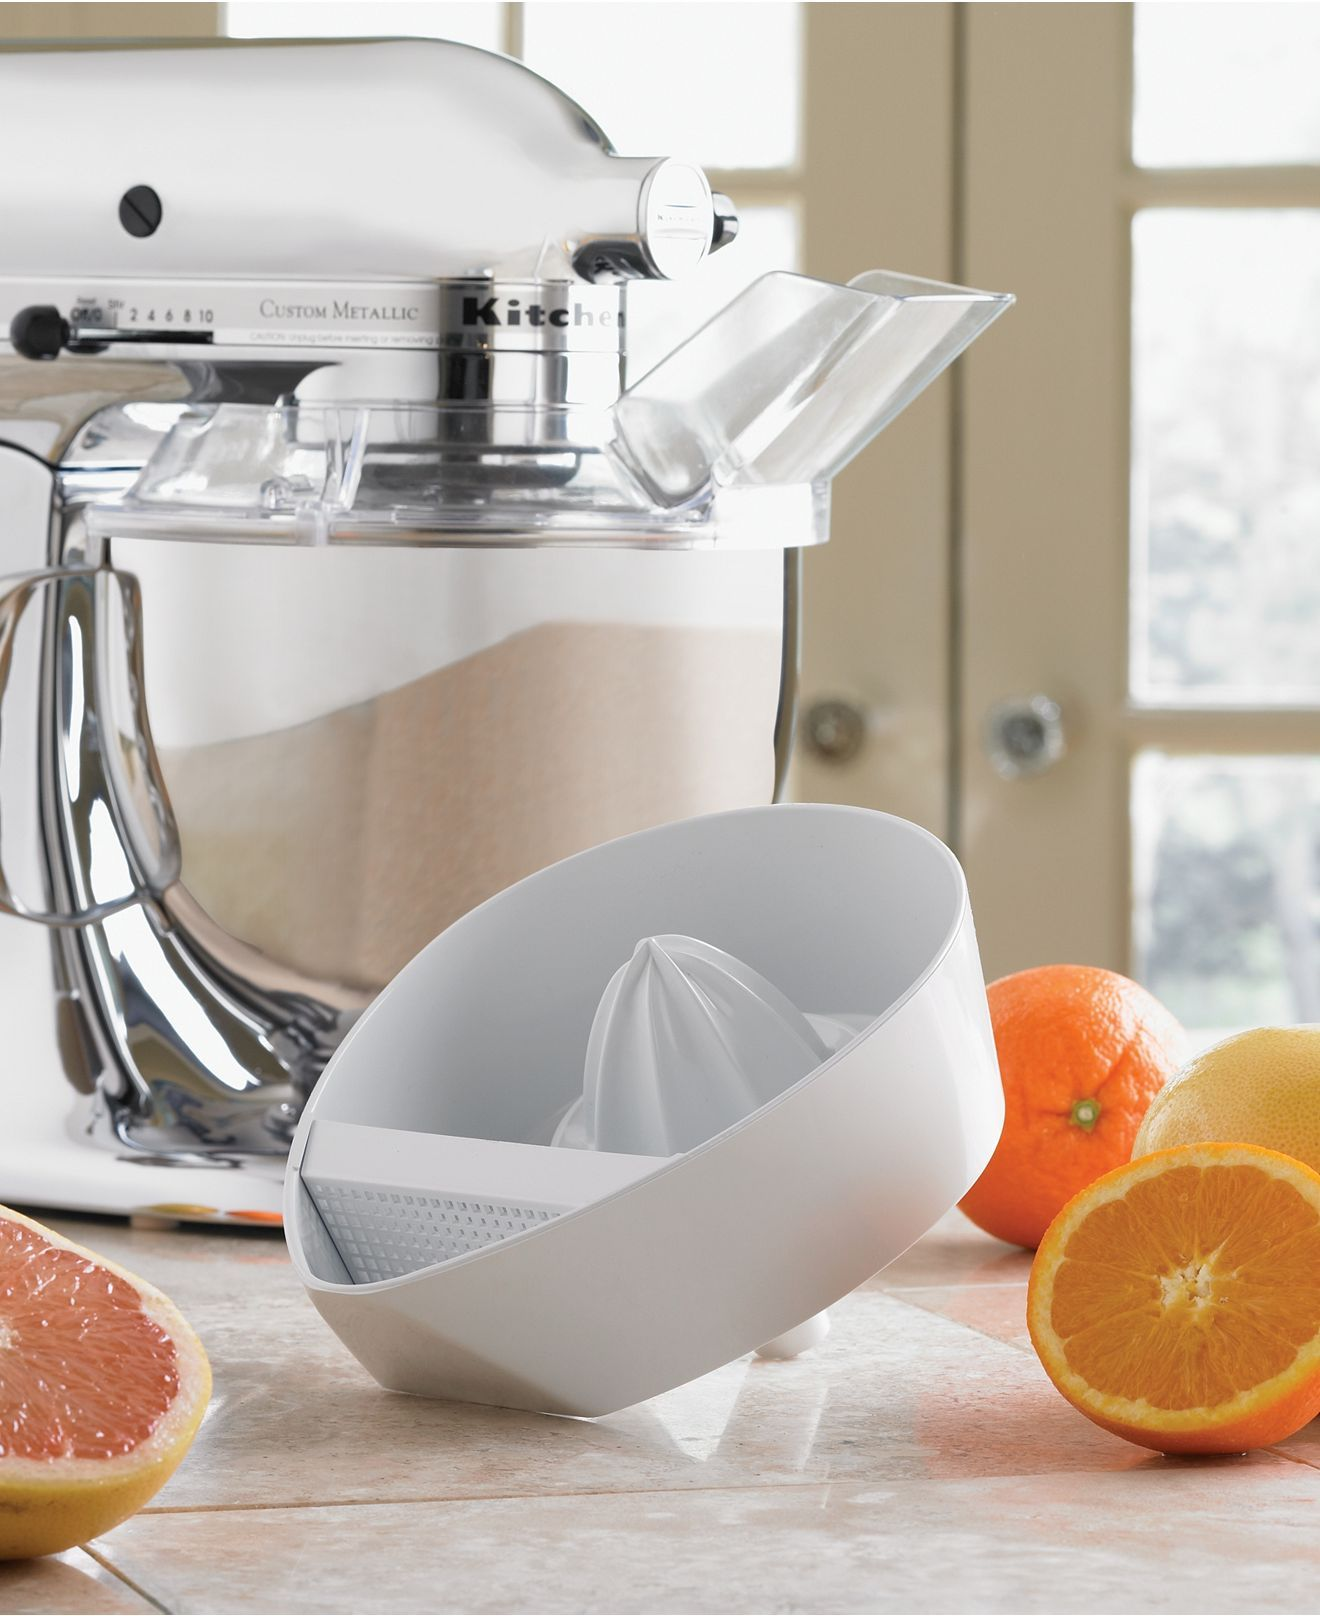 kitchen aid attachment islands that look like furniture kitchenaid je juicer stand mixer